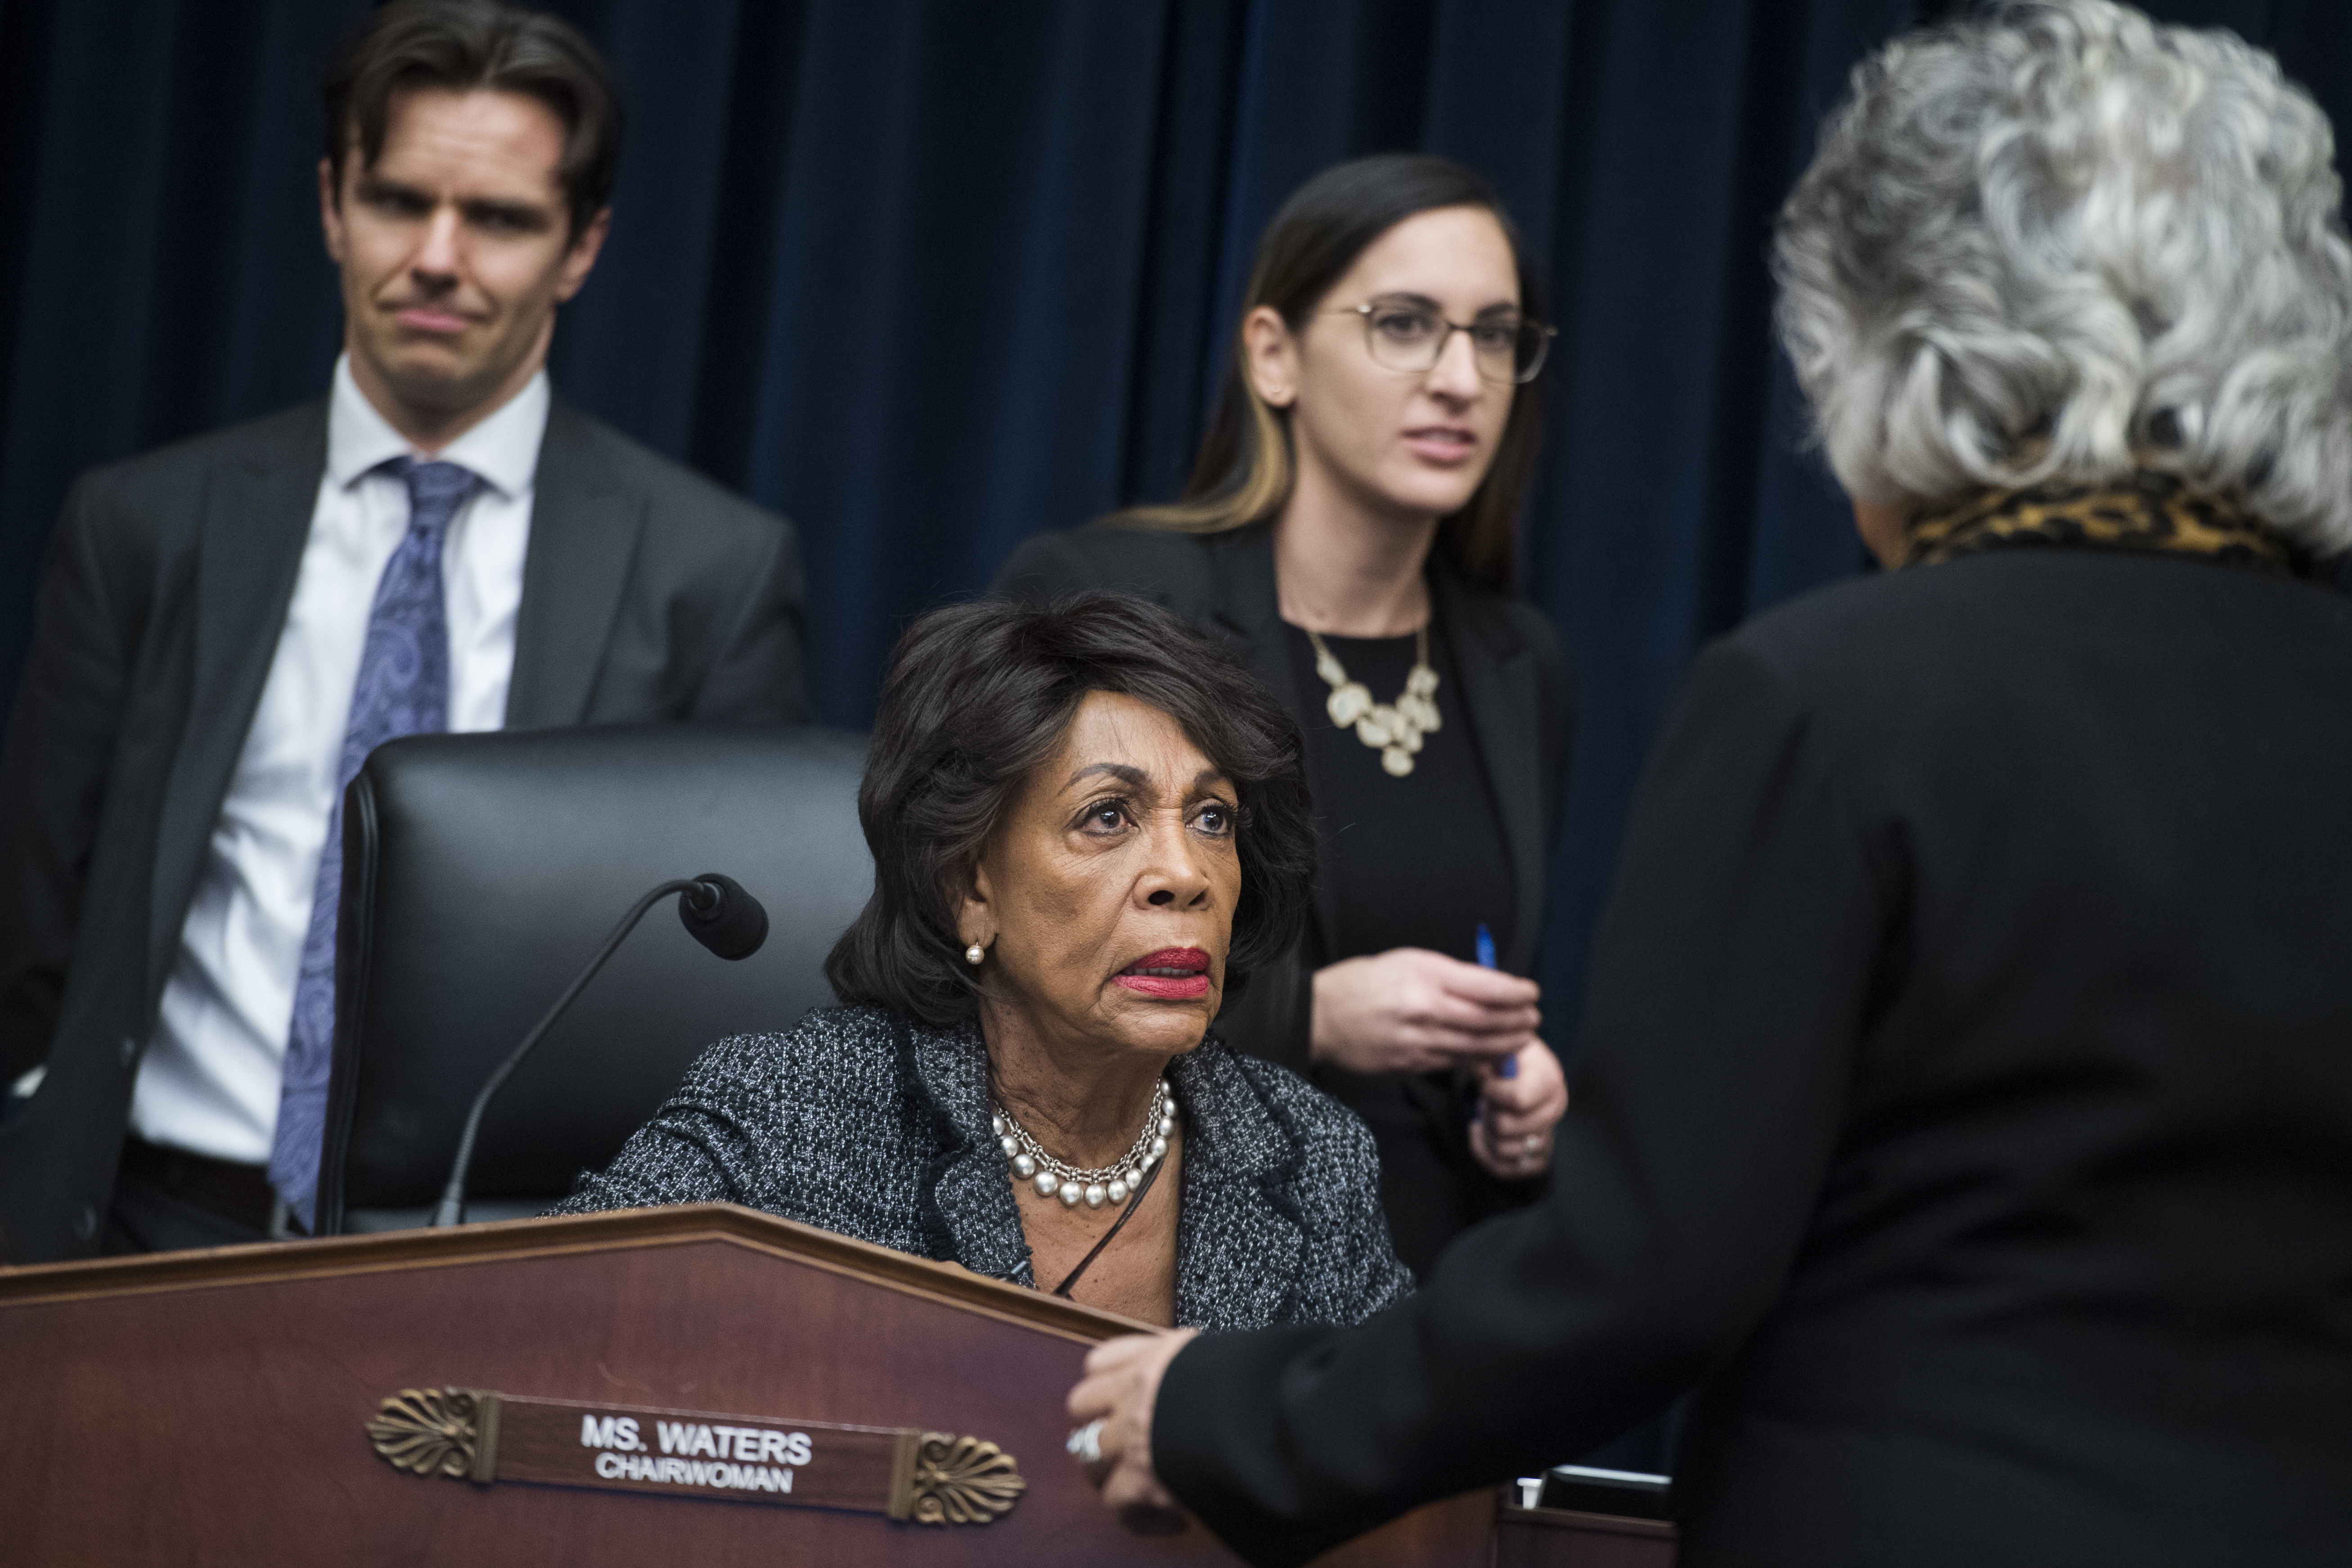 UNITED STATES - JANUARY 29: Chairwoman Maxine Waters, D-Calif., left, talks with Rep. Joyce Beatty, D-Ohio, during a House Financial Services Committee organizational meeting in Rayburn Building on Tuesday, January 29, 2019. (Photo By Tom Williams/CQ Roll Call)